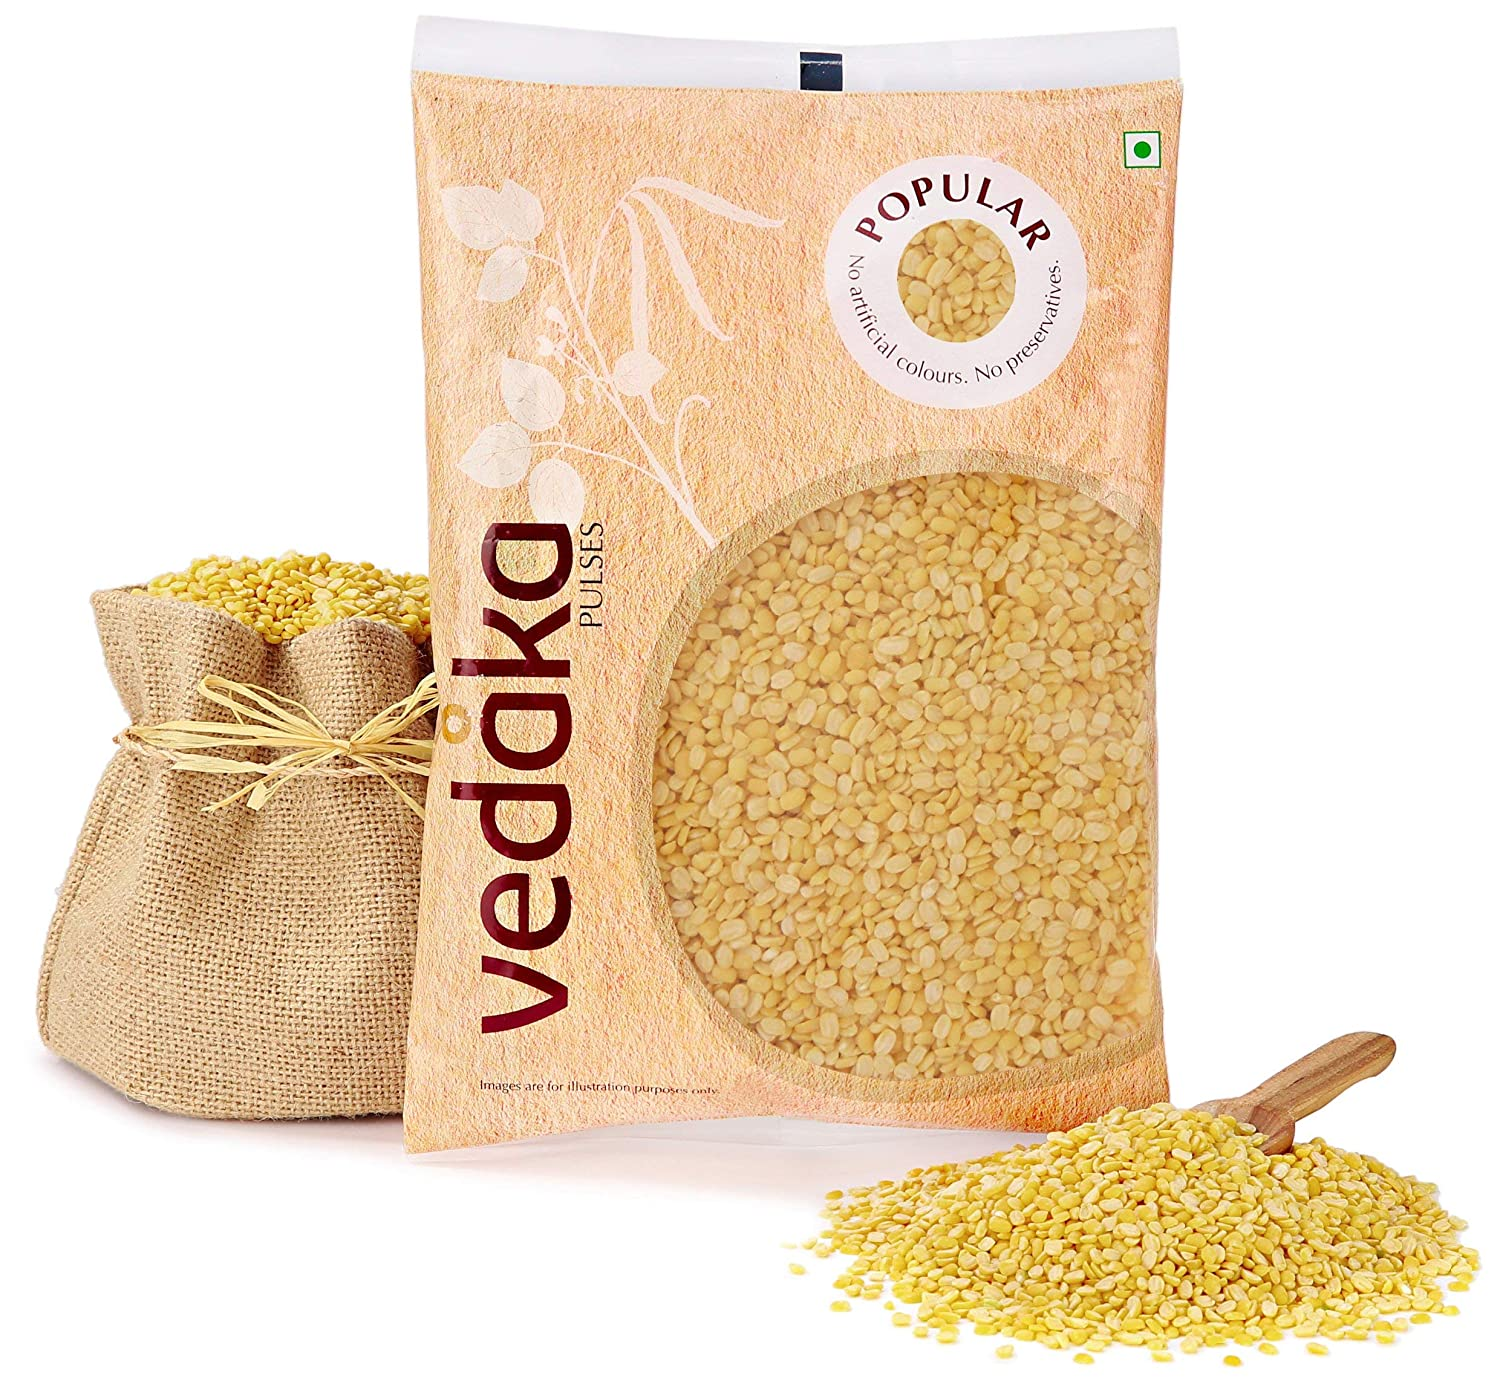 Vedaka Popular Moong Dal (Yellow), 1 kg